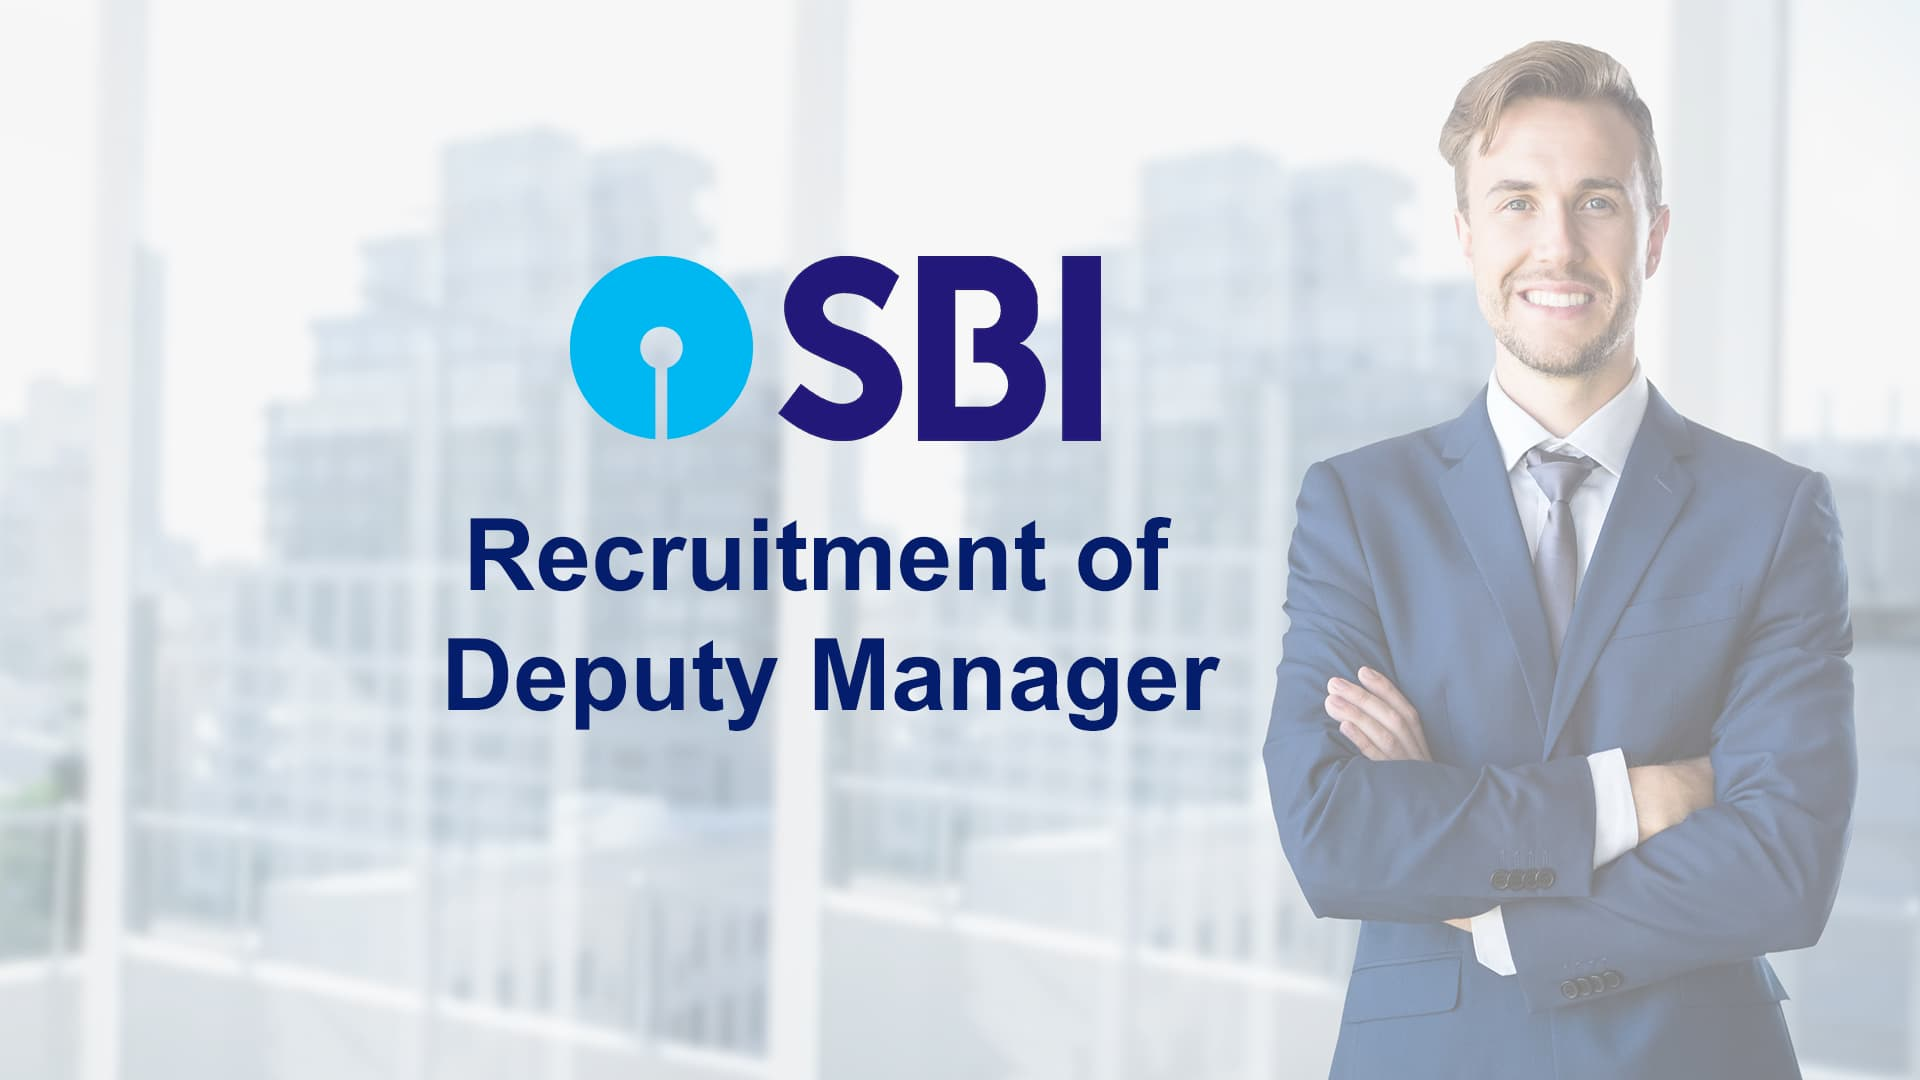 SBI Recruitment of Deputy Manager